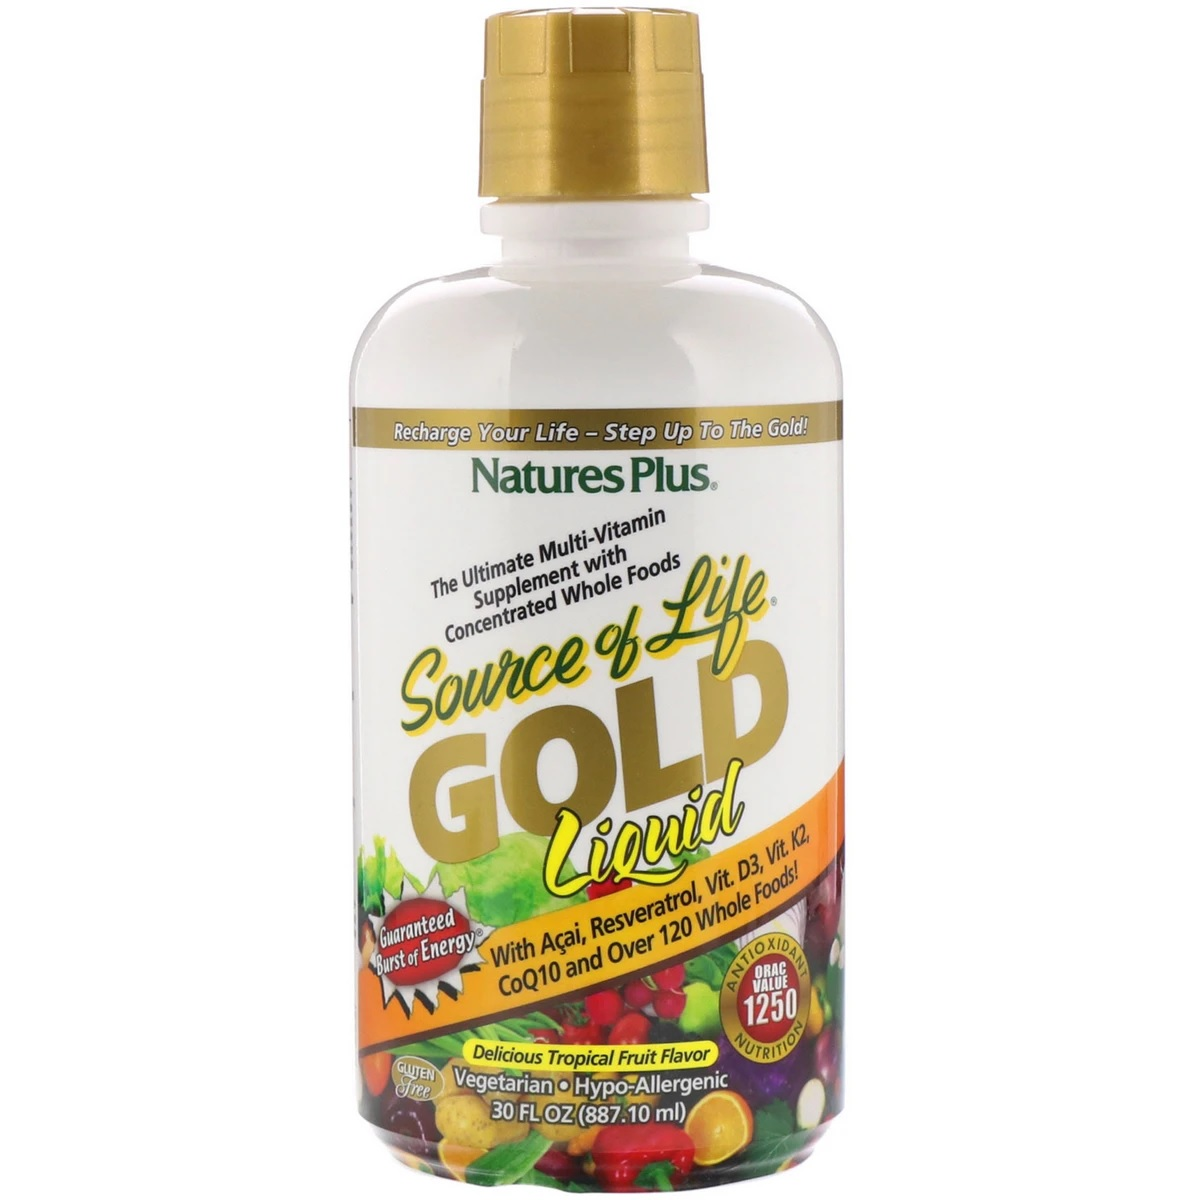 Image of Source of Life GOLD Liquid Tropical Fruit